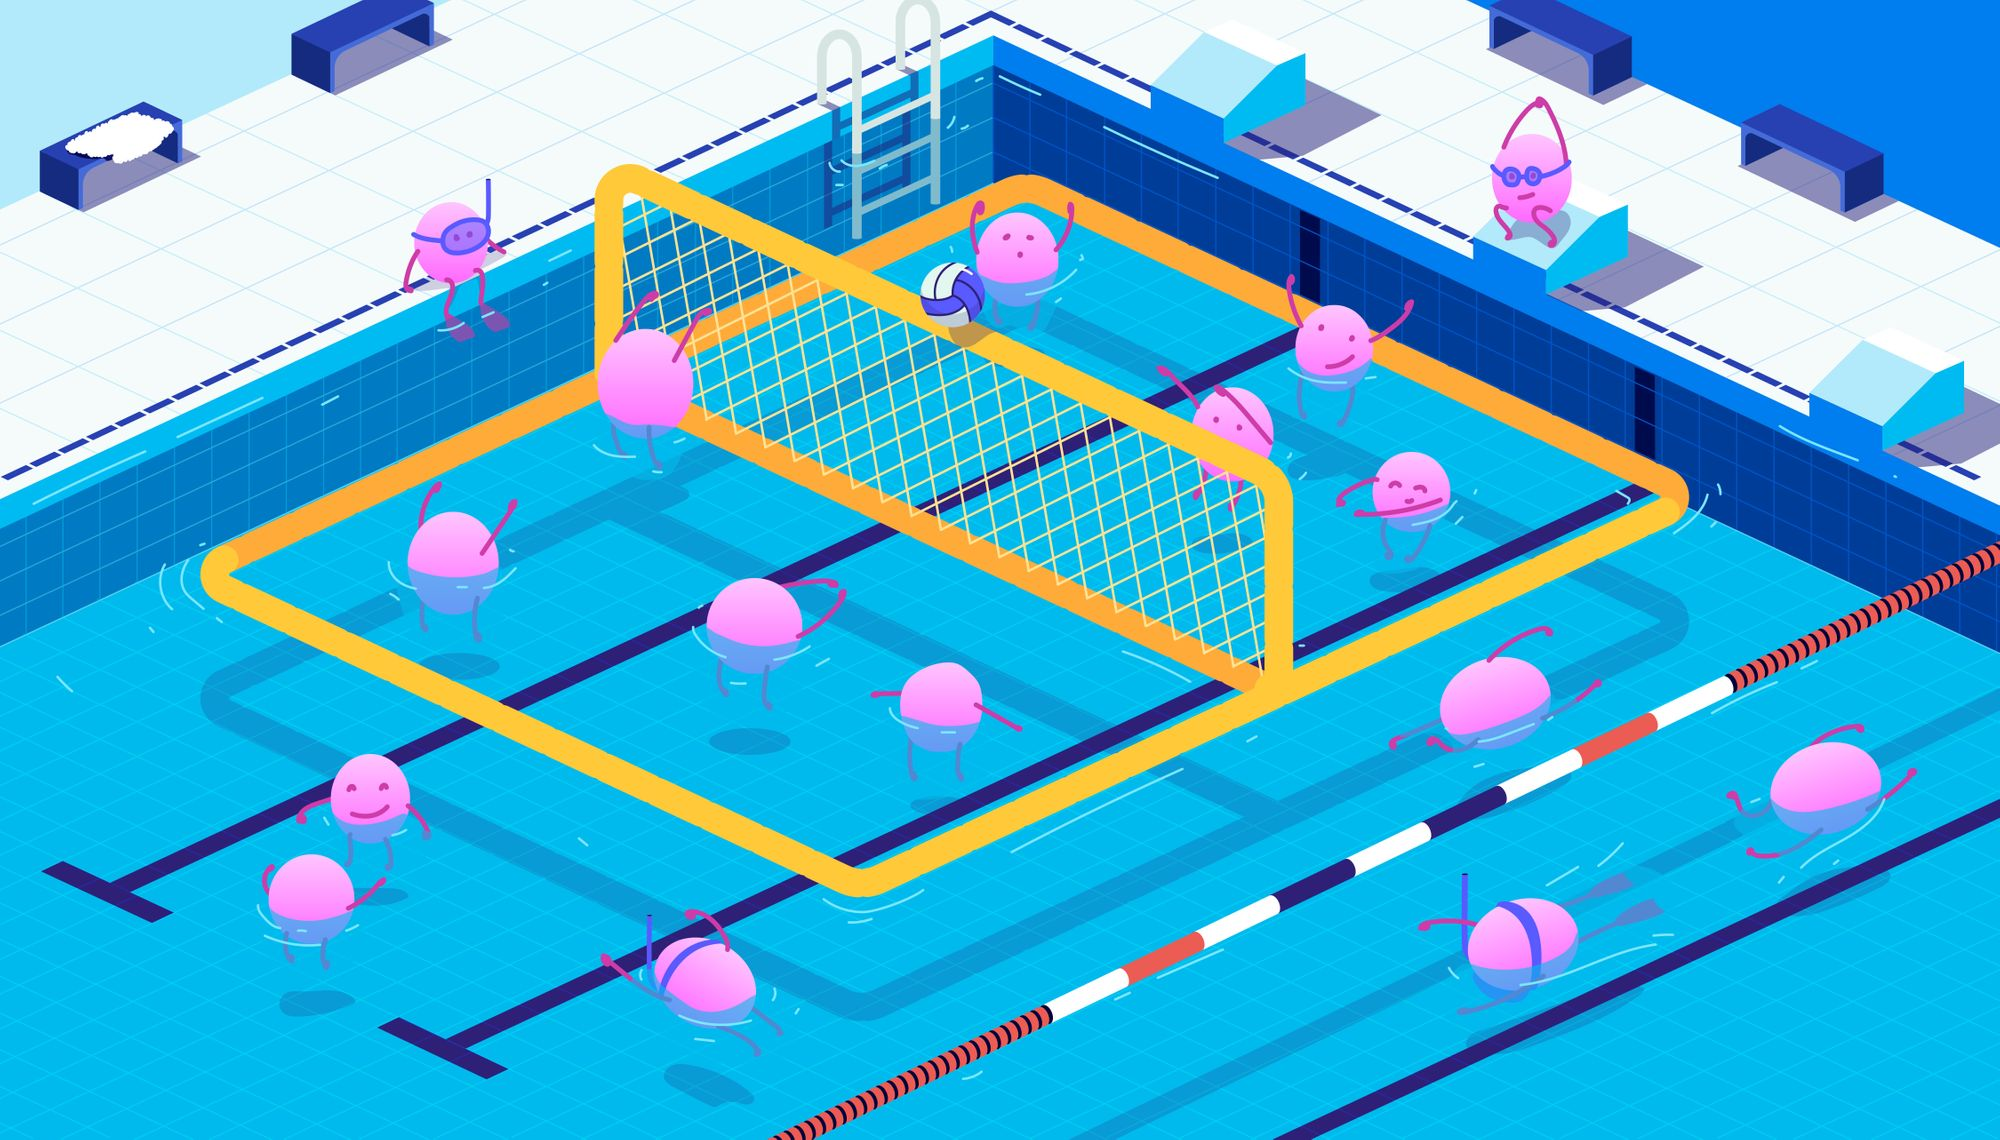 2019_03_21-water_volleybal